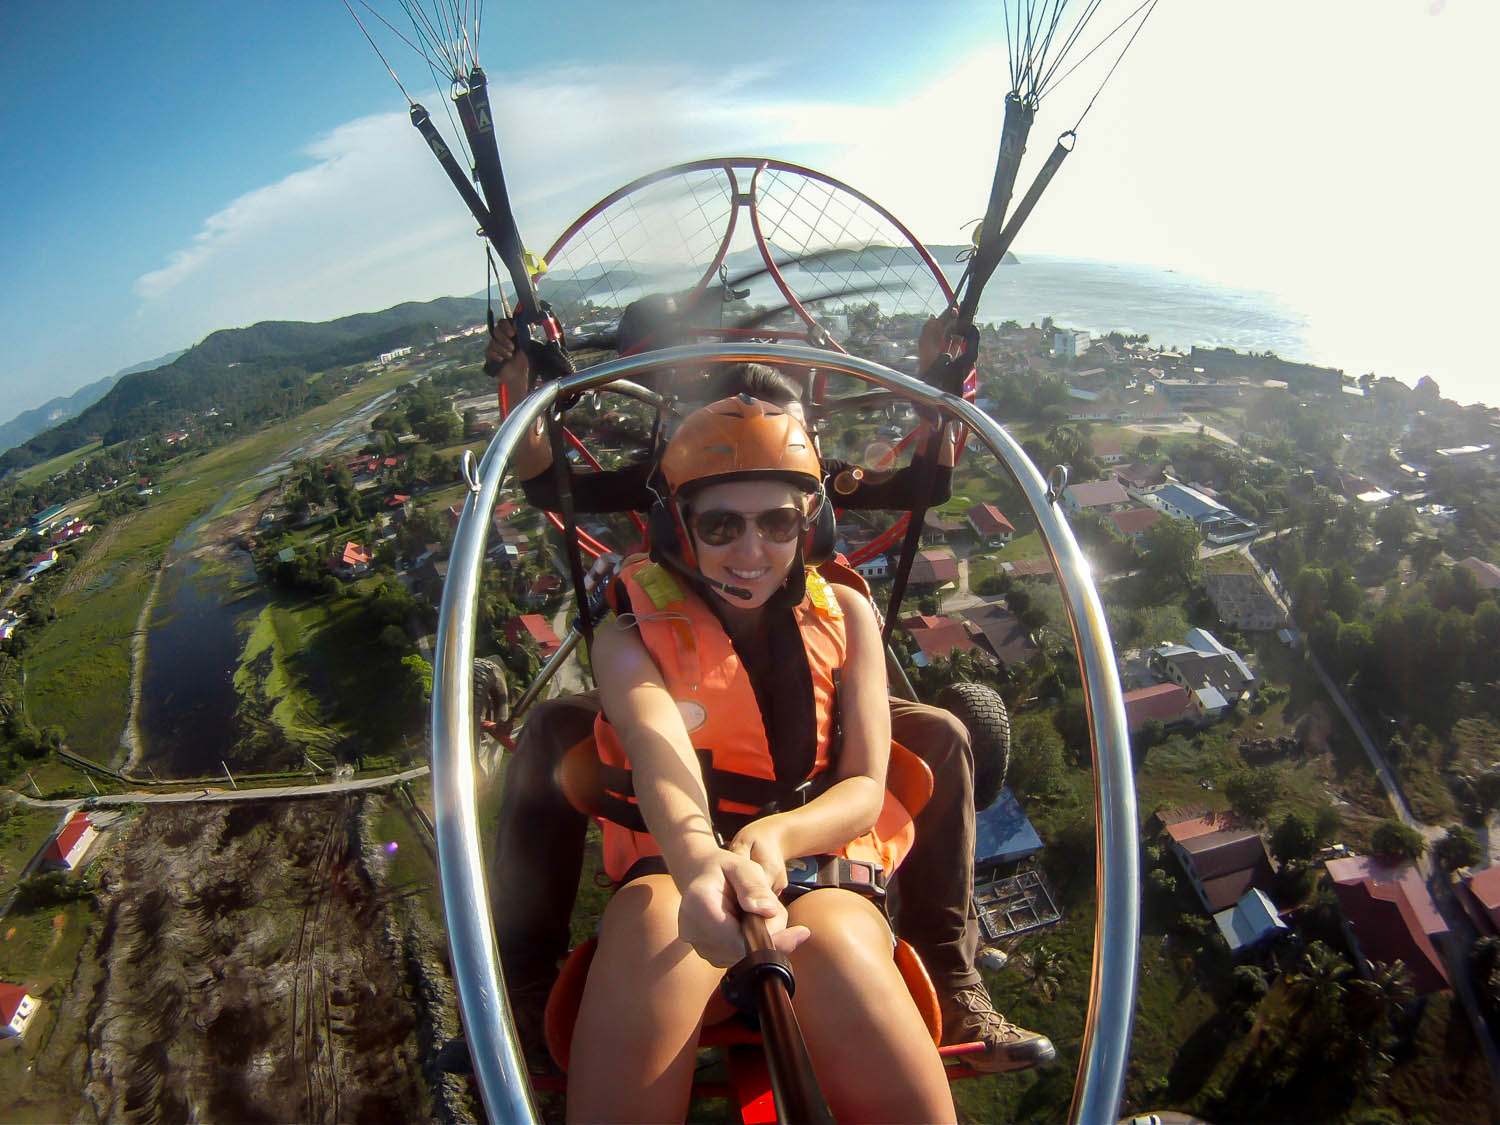 Soaring the Skies with Langkawi Gliders